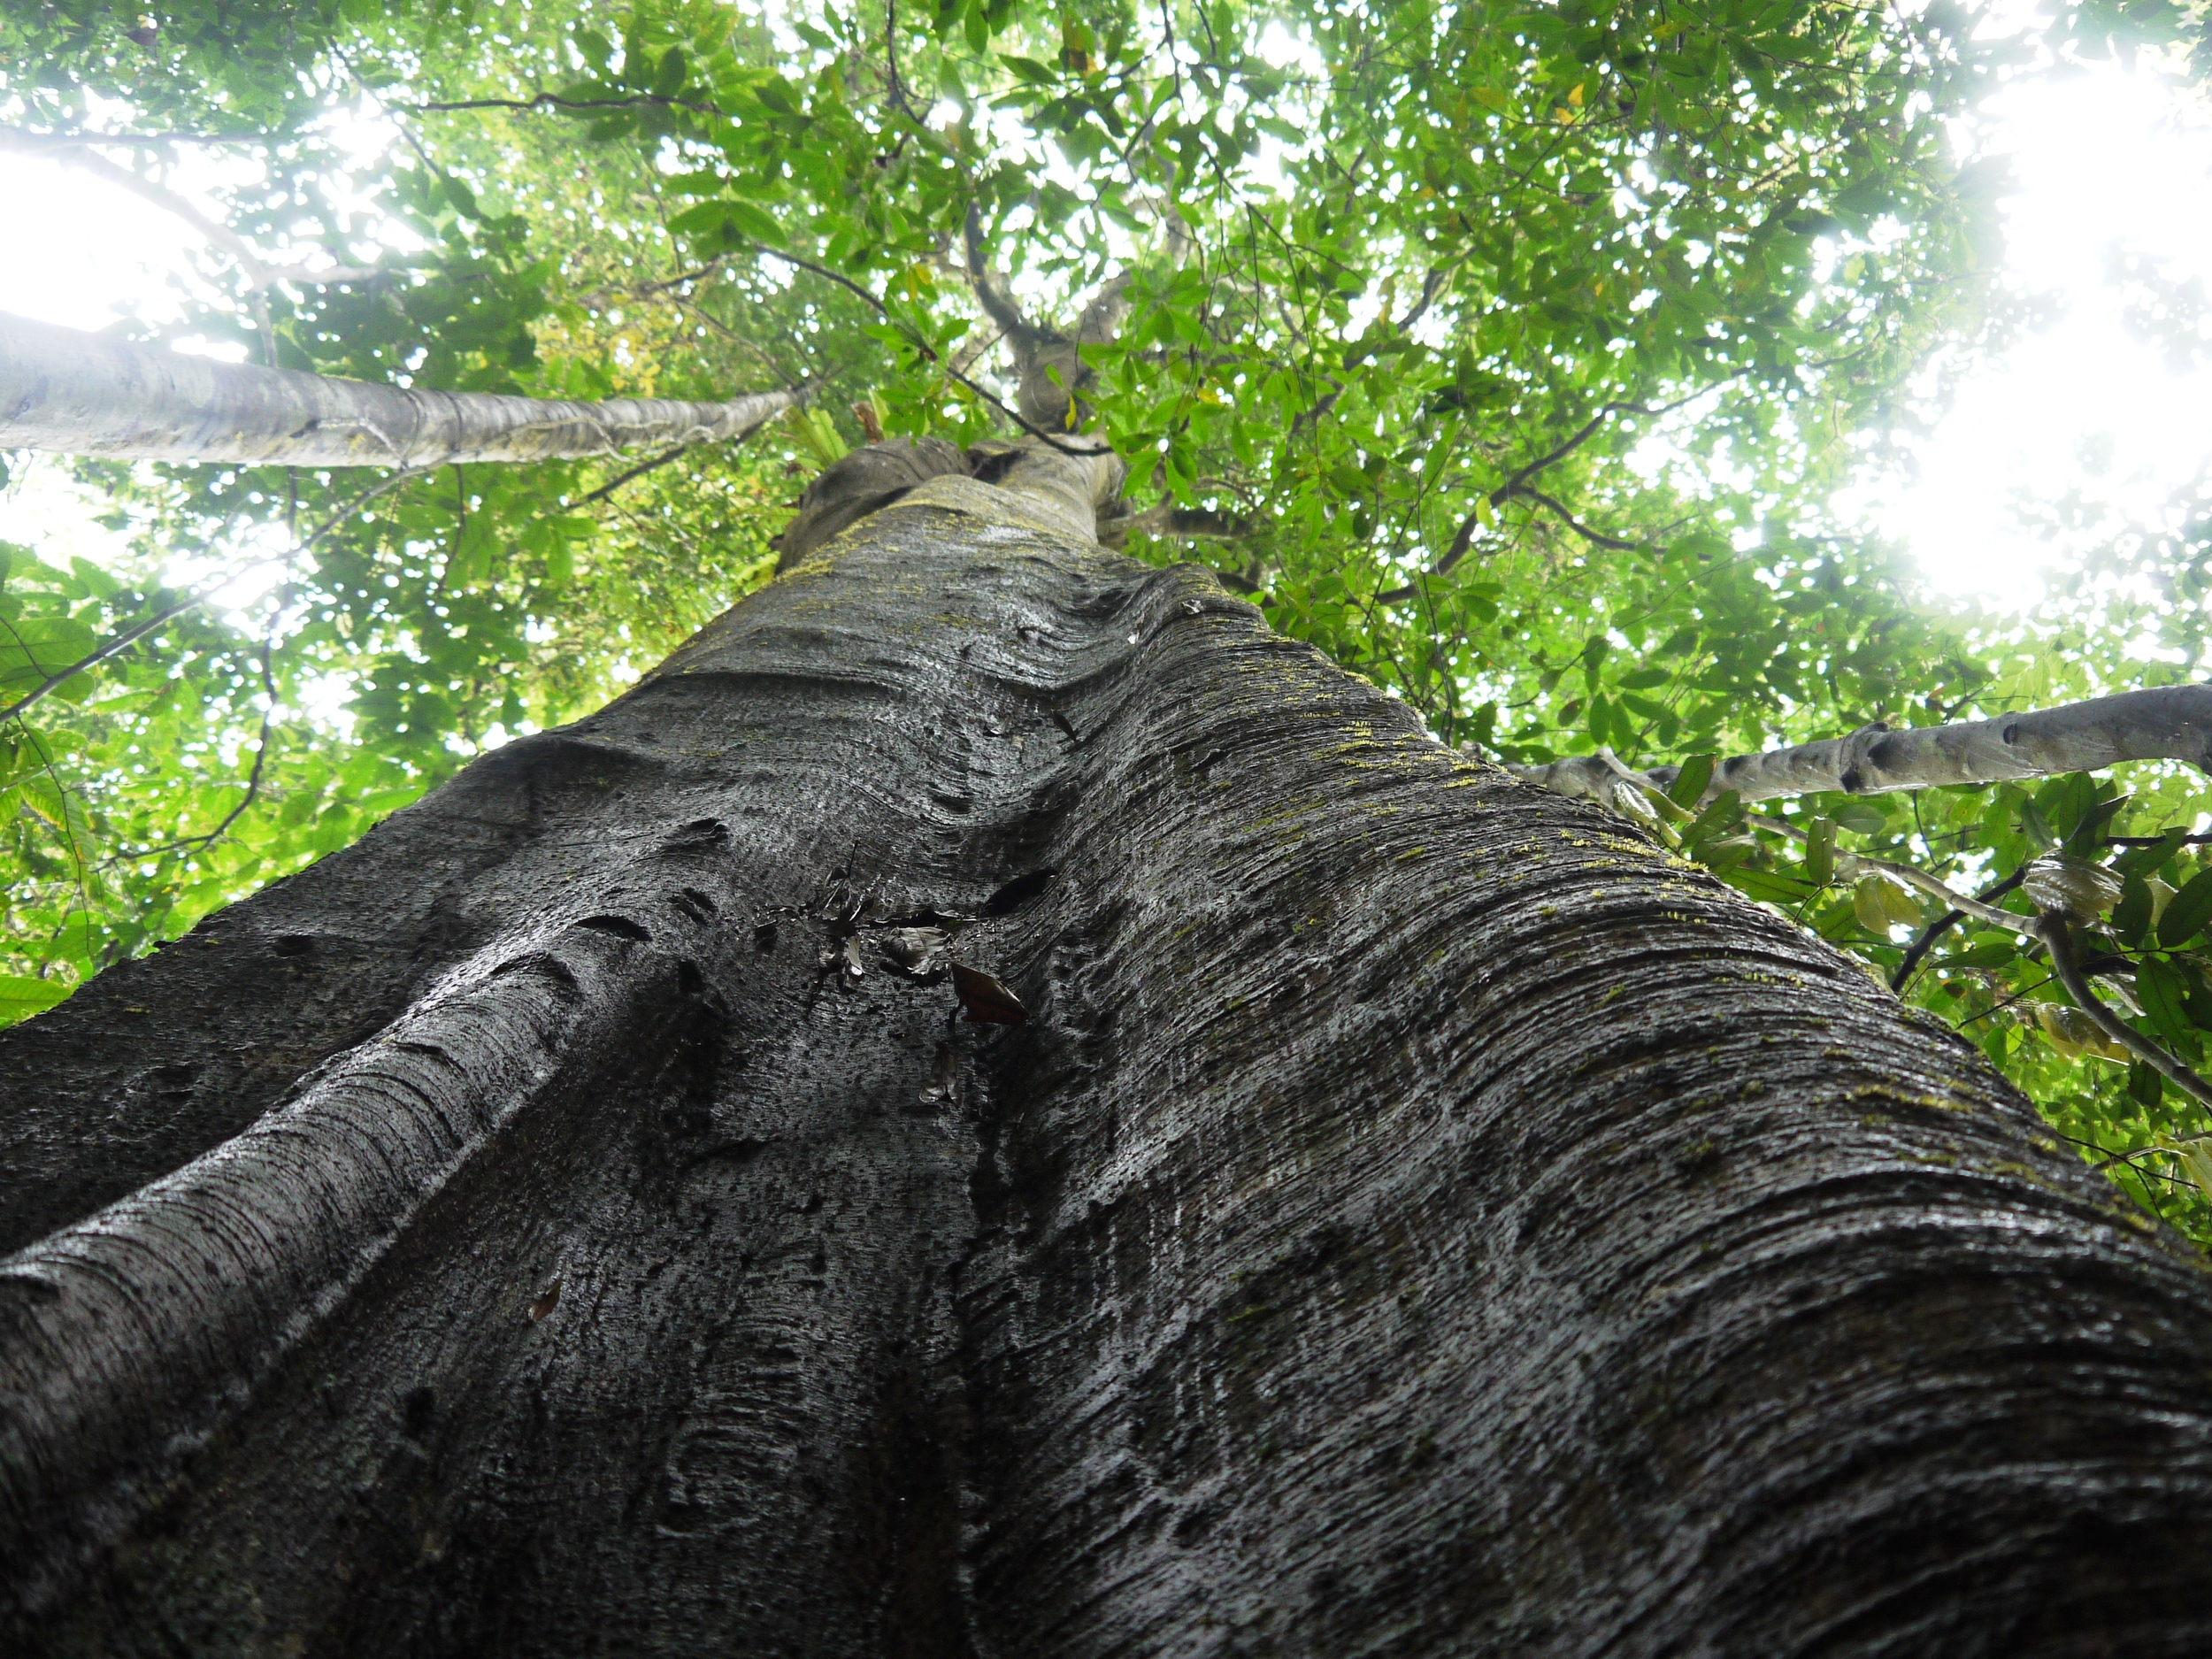 Many Amazon tree species are naturally rare, making them vulnerable to future land-use changes